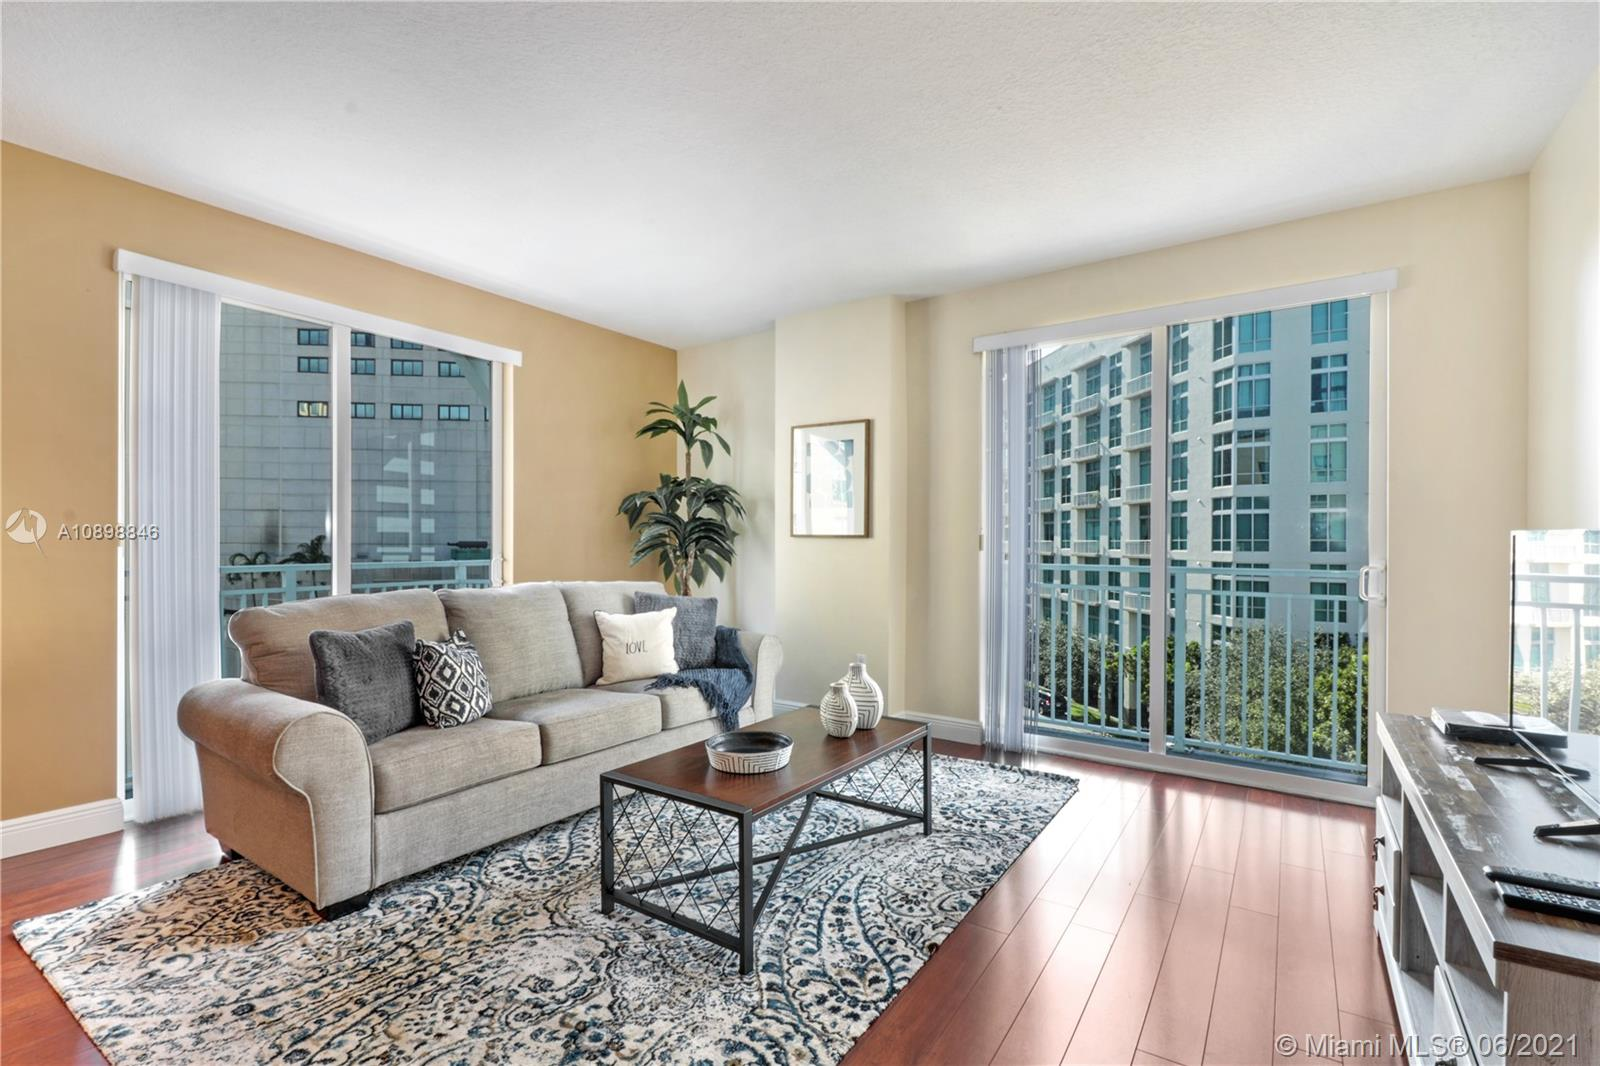 Downtown Dadeland Building F #201 - 7290 SW 90th St #201, Miami, FL 33156